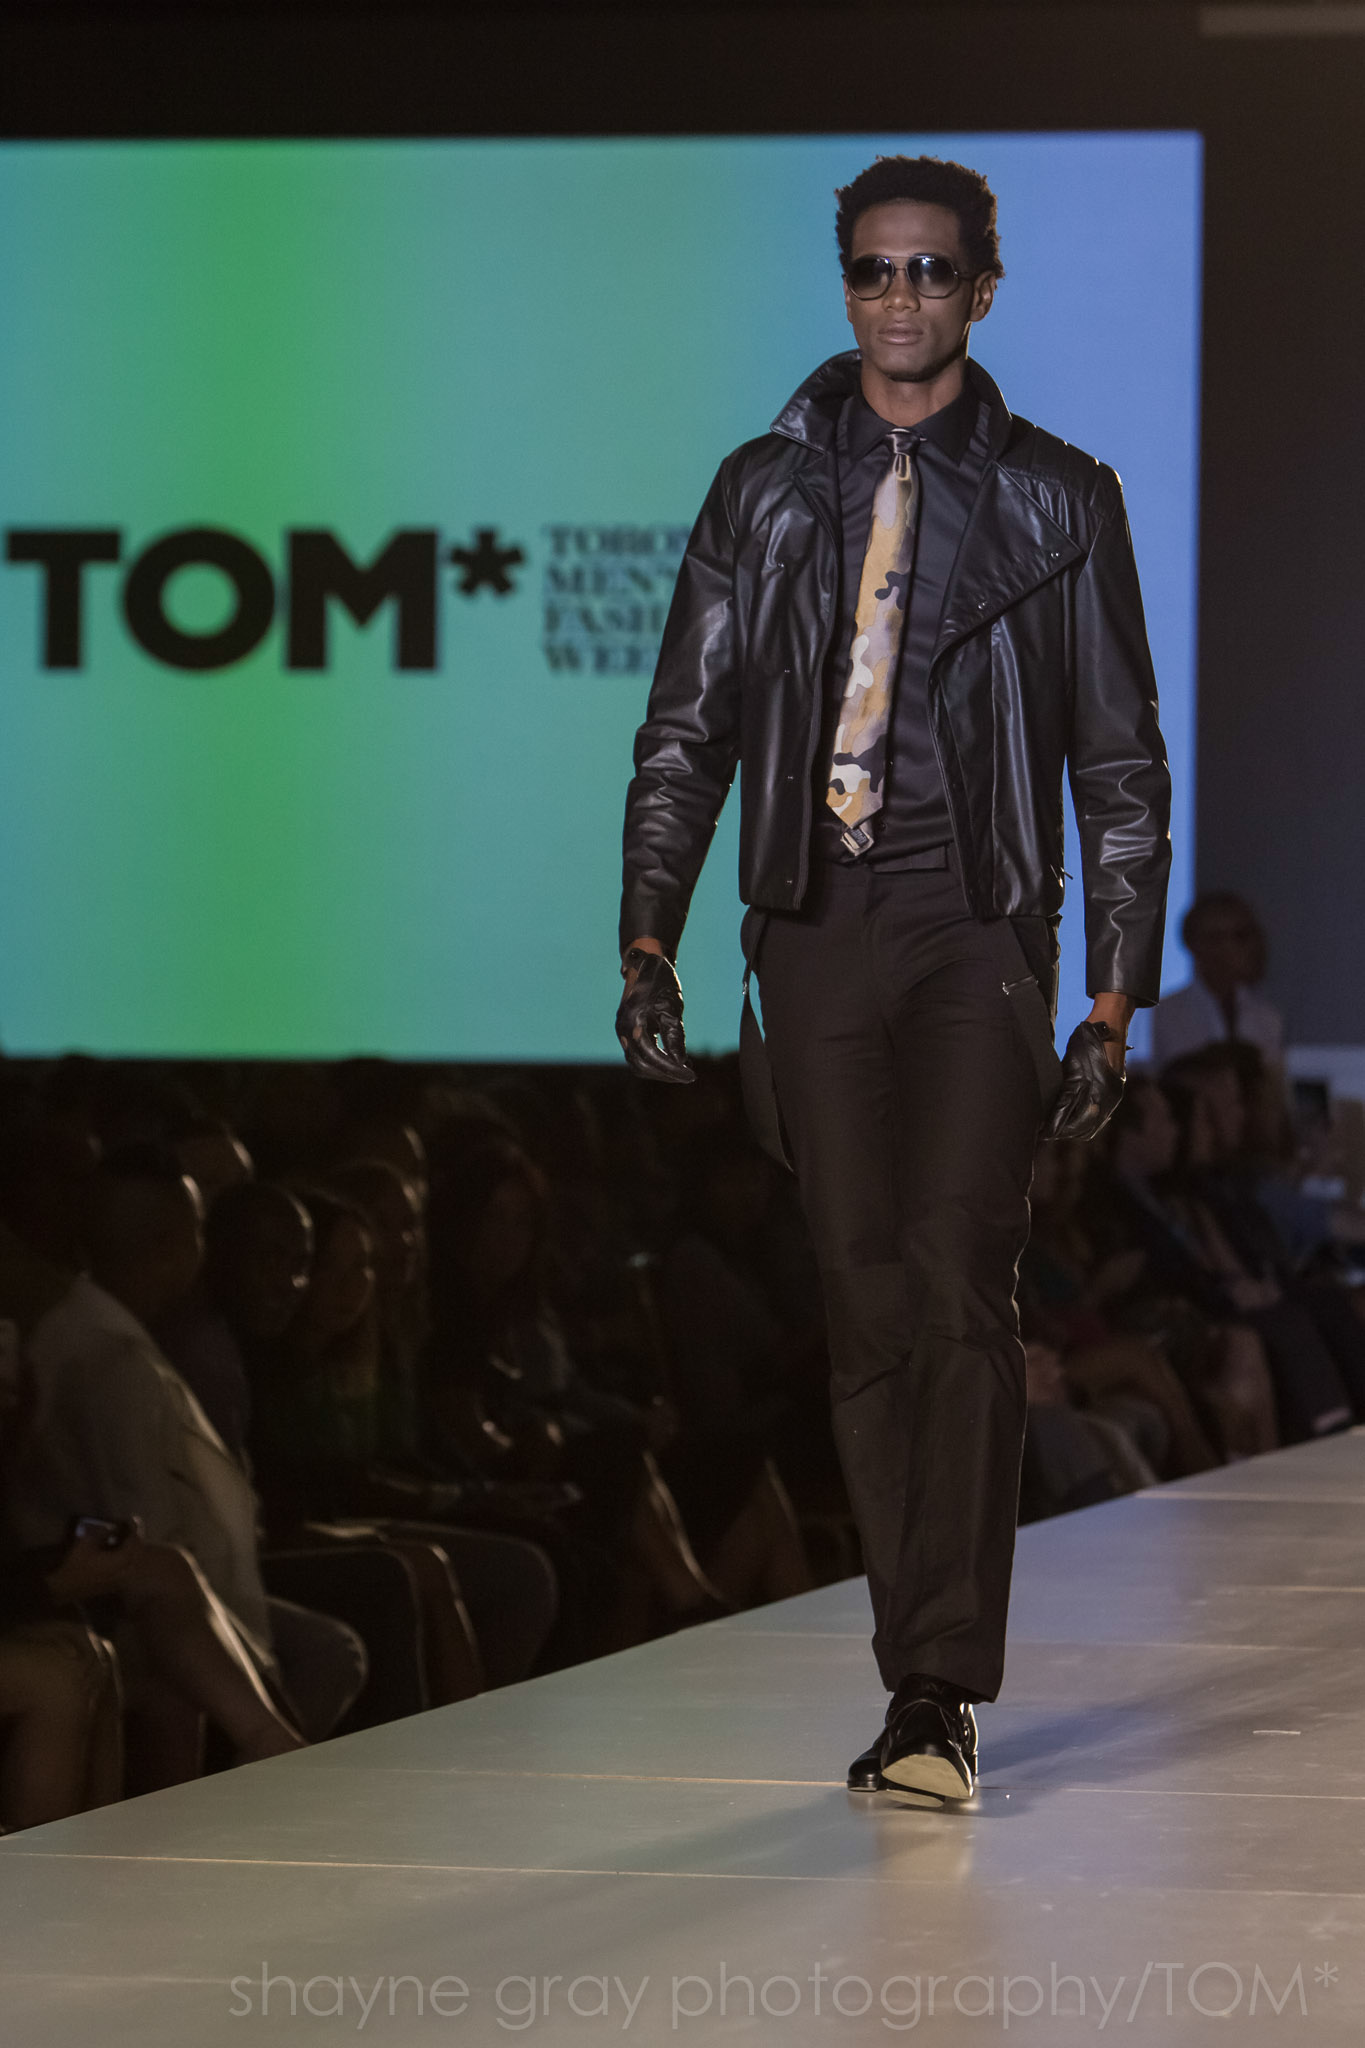 Shayne-Gray-Toronto-men's-fashion_week-TOM-christopher-bates-7383.jpg